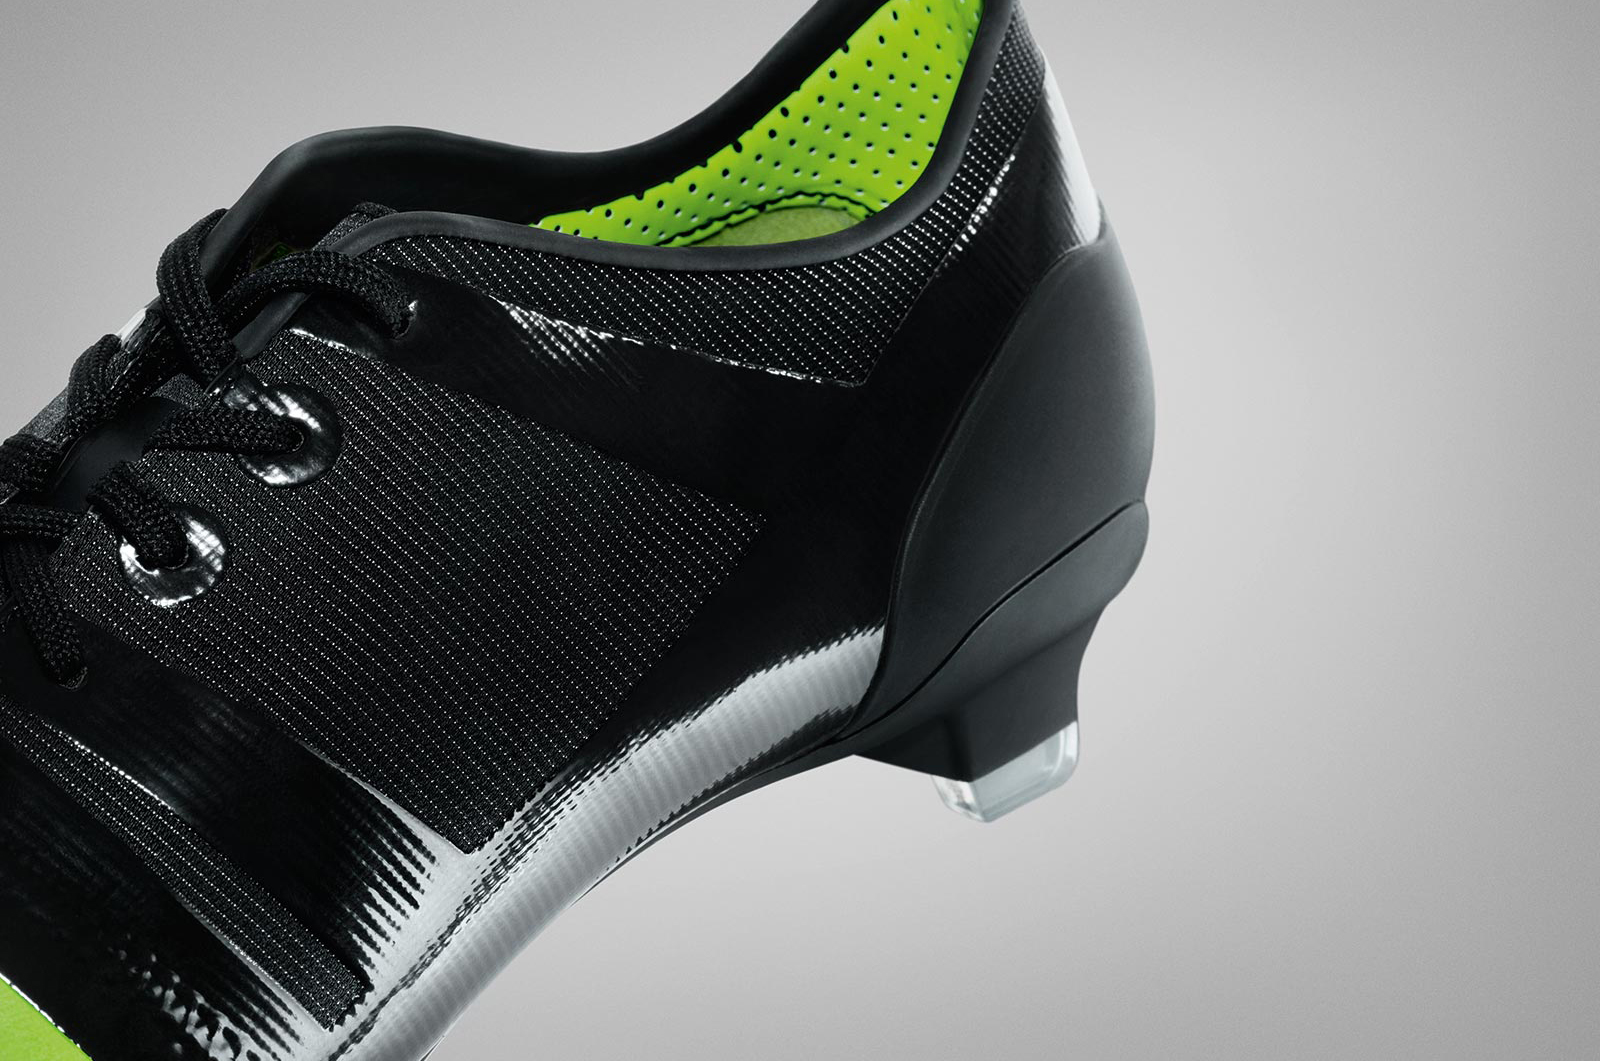 remake-boots-leaked-nike-gs-2012-football-boots-closer-look (6)